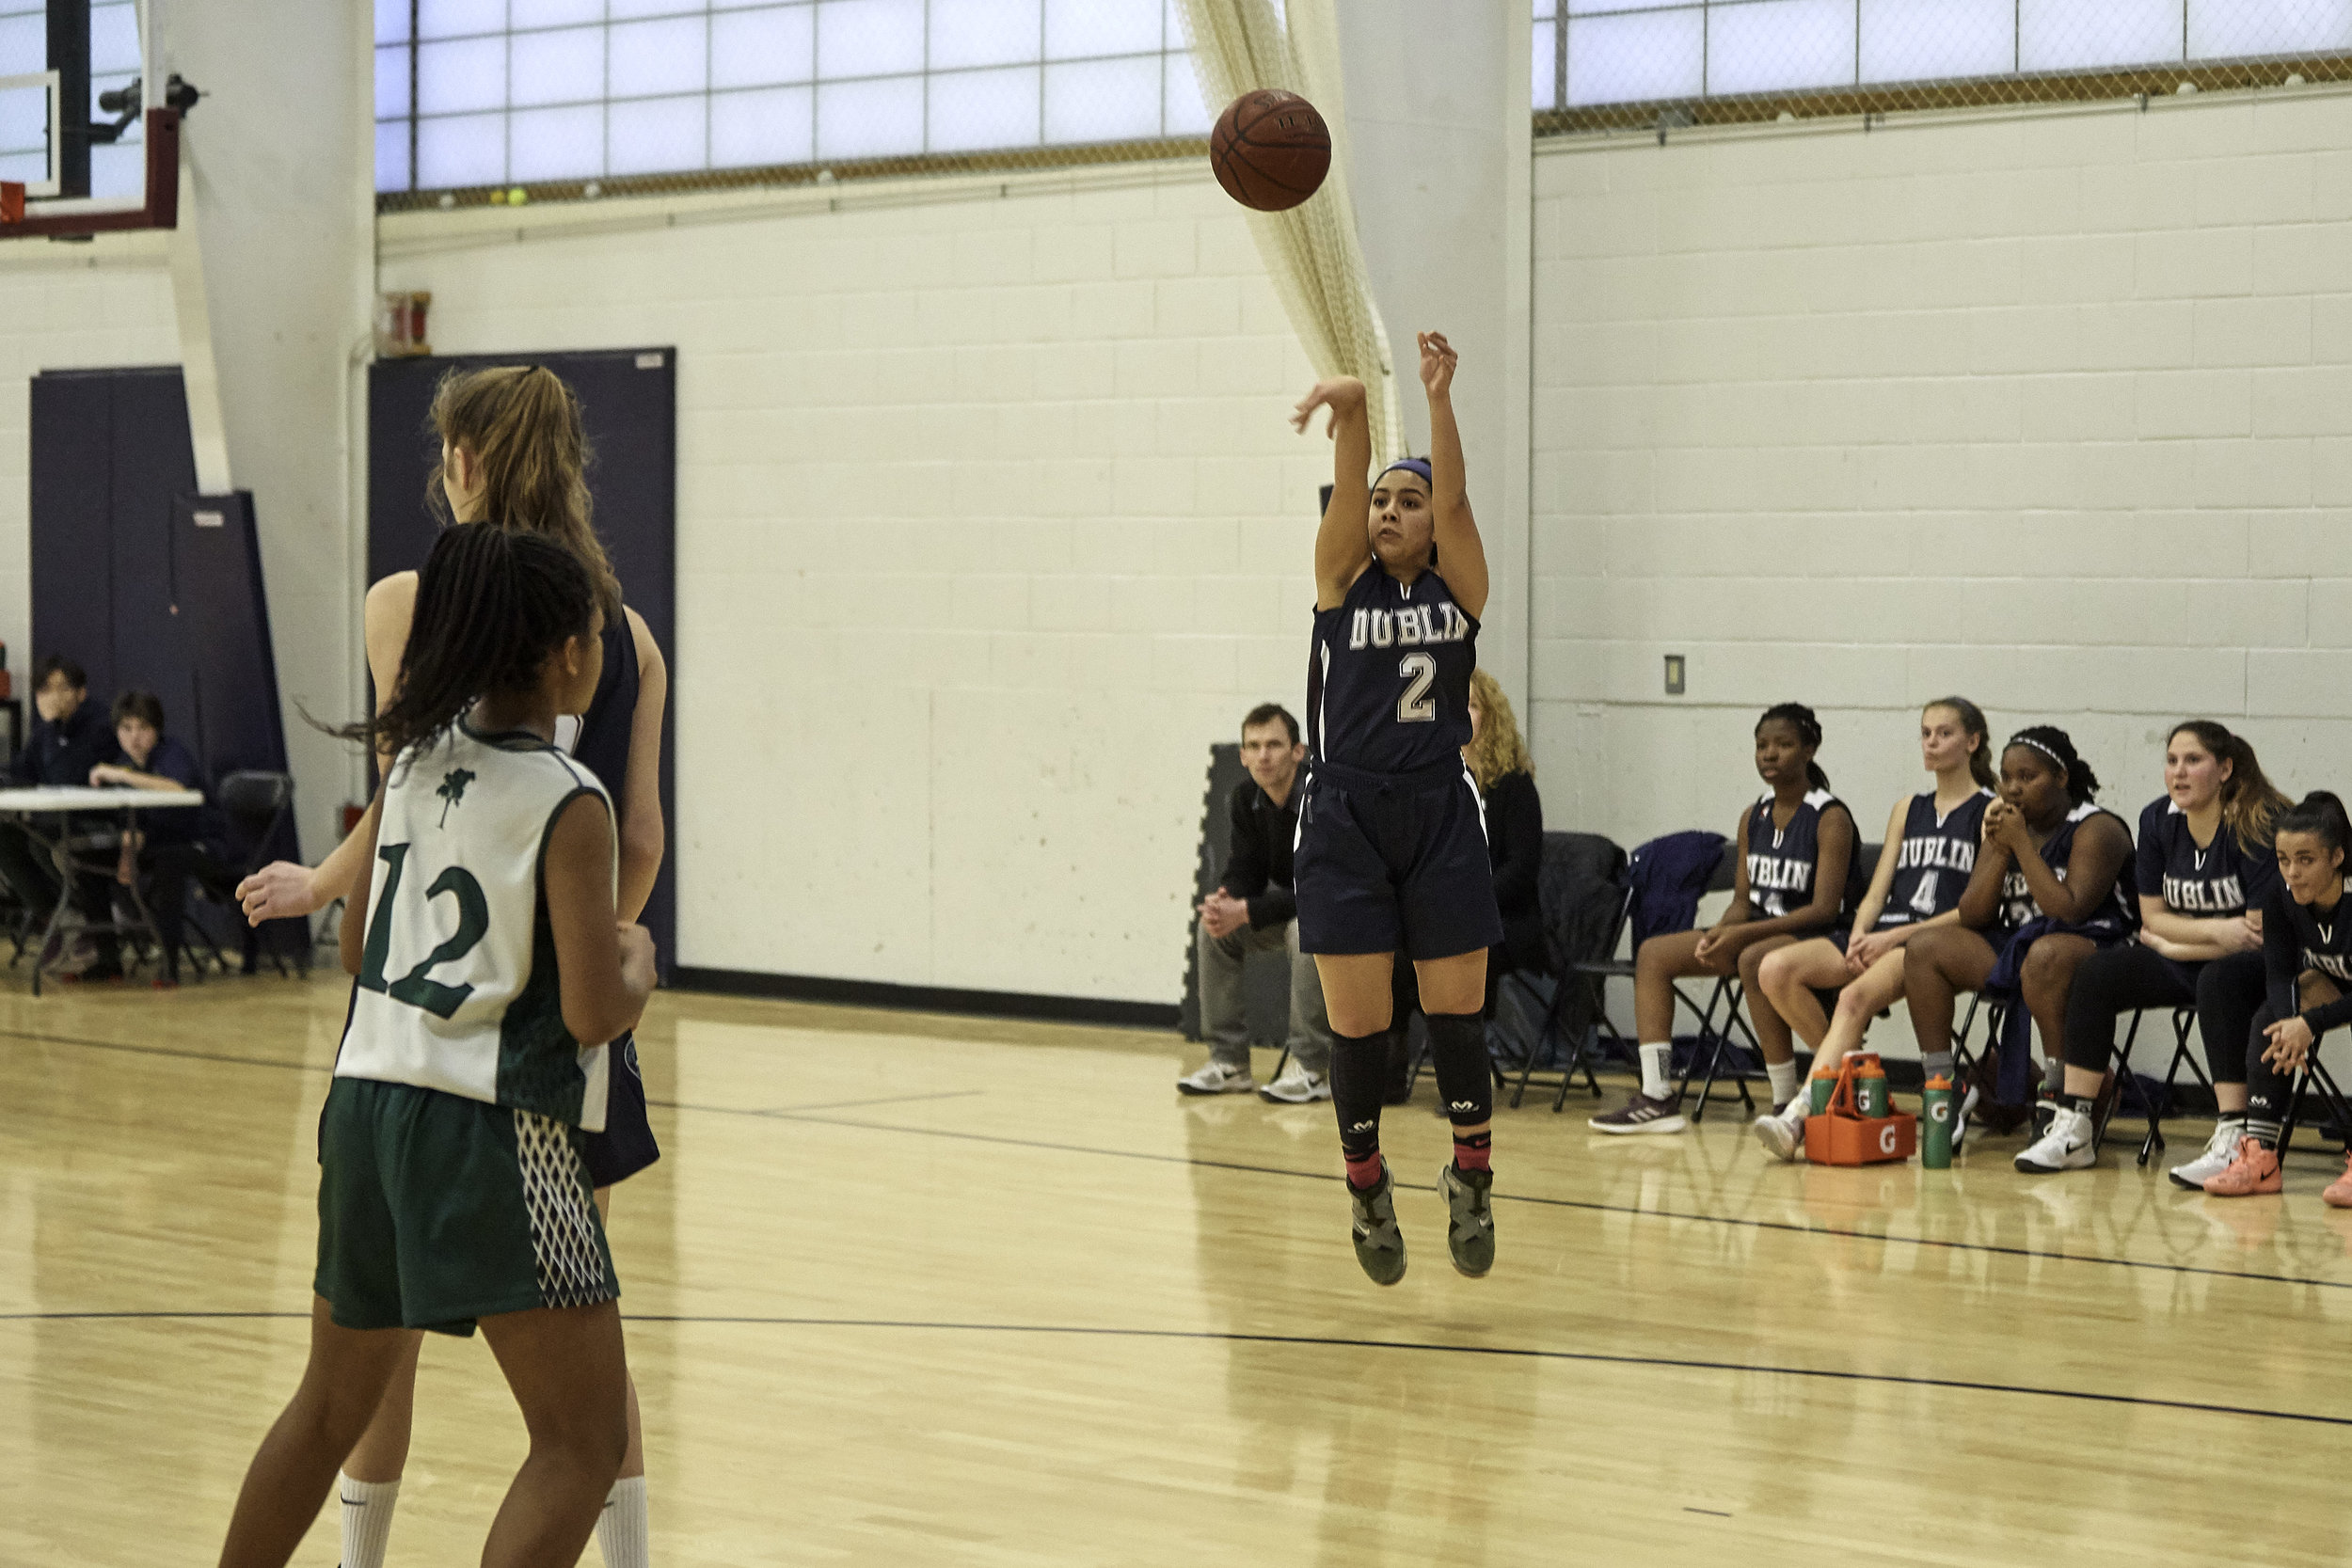 Basketball vs Putney School, February 9, 2019 - 167405.jpg